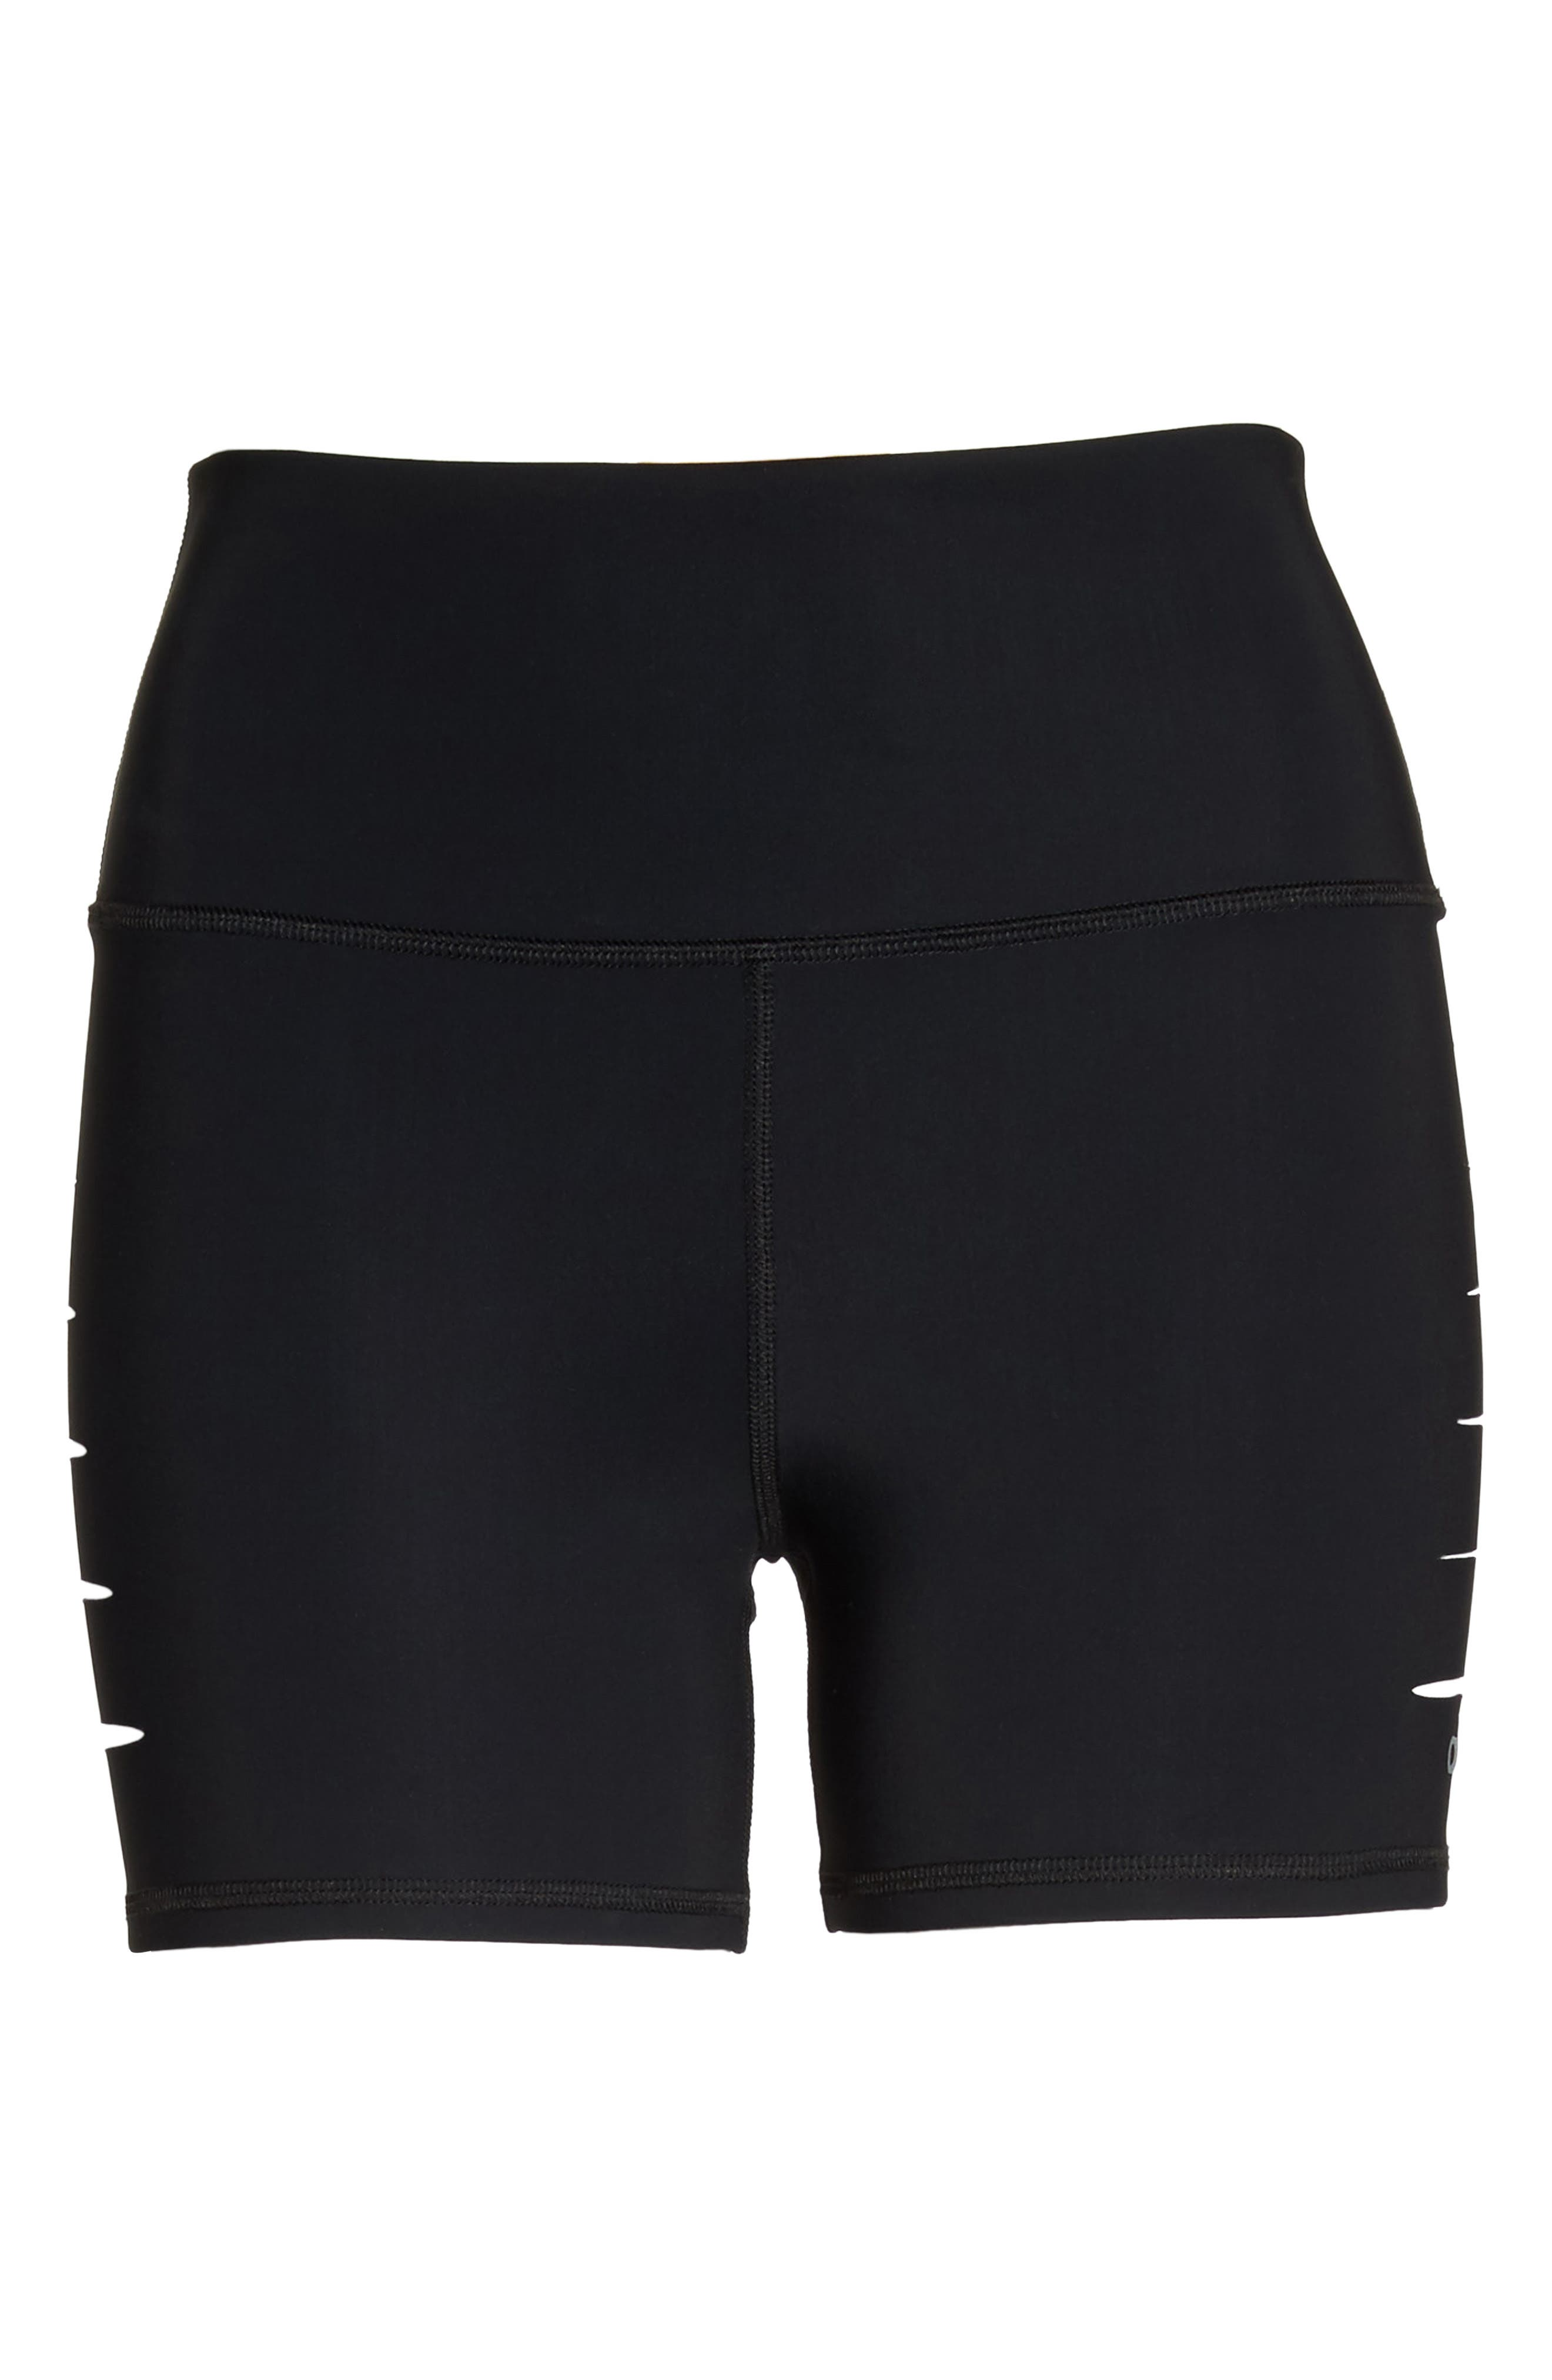 ALO, Ripped High Waist Shorts, Alternate thumbnail 6, color, BLACK